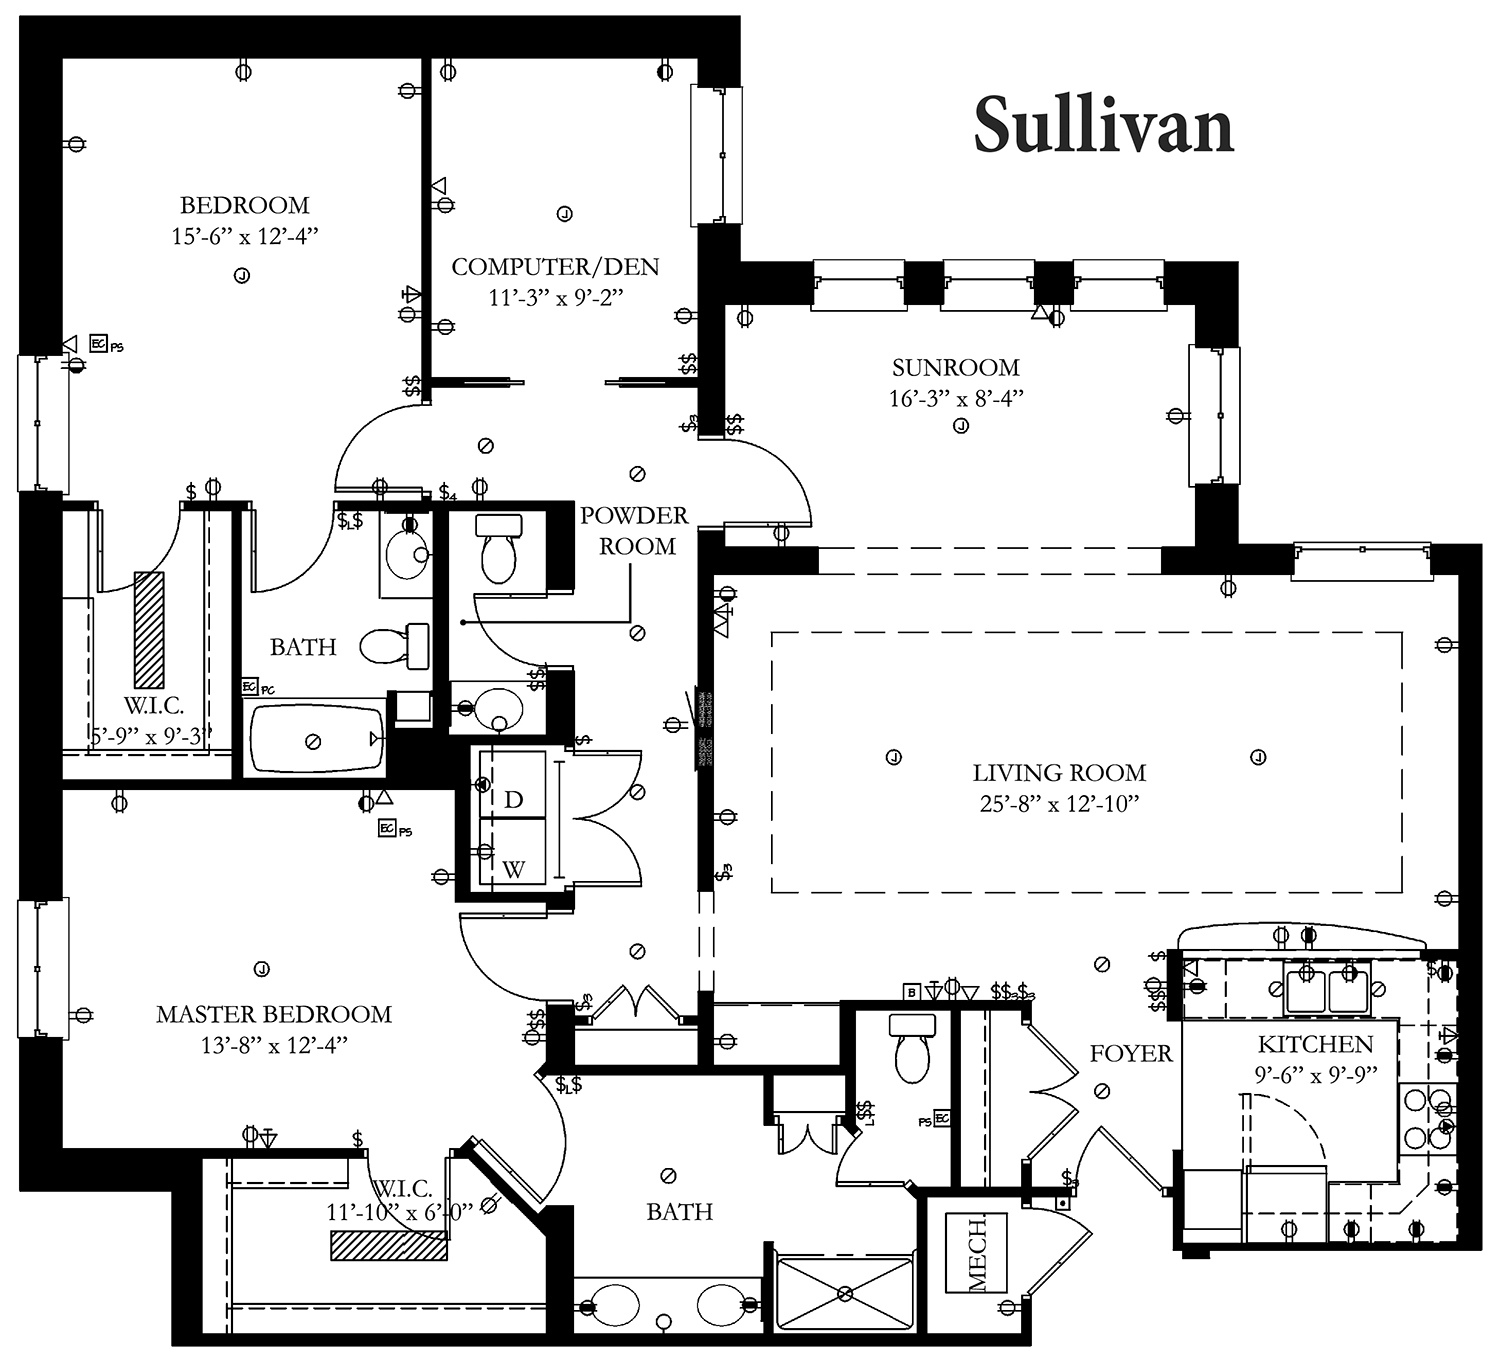 Pittsburgh senior residential living providence point for Sullivan floor plan